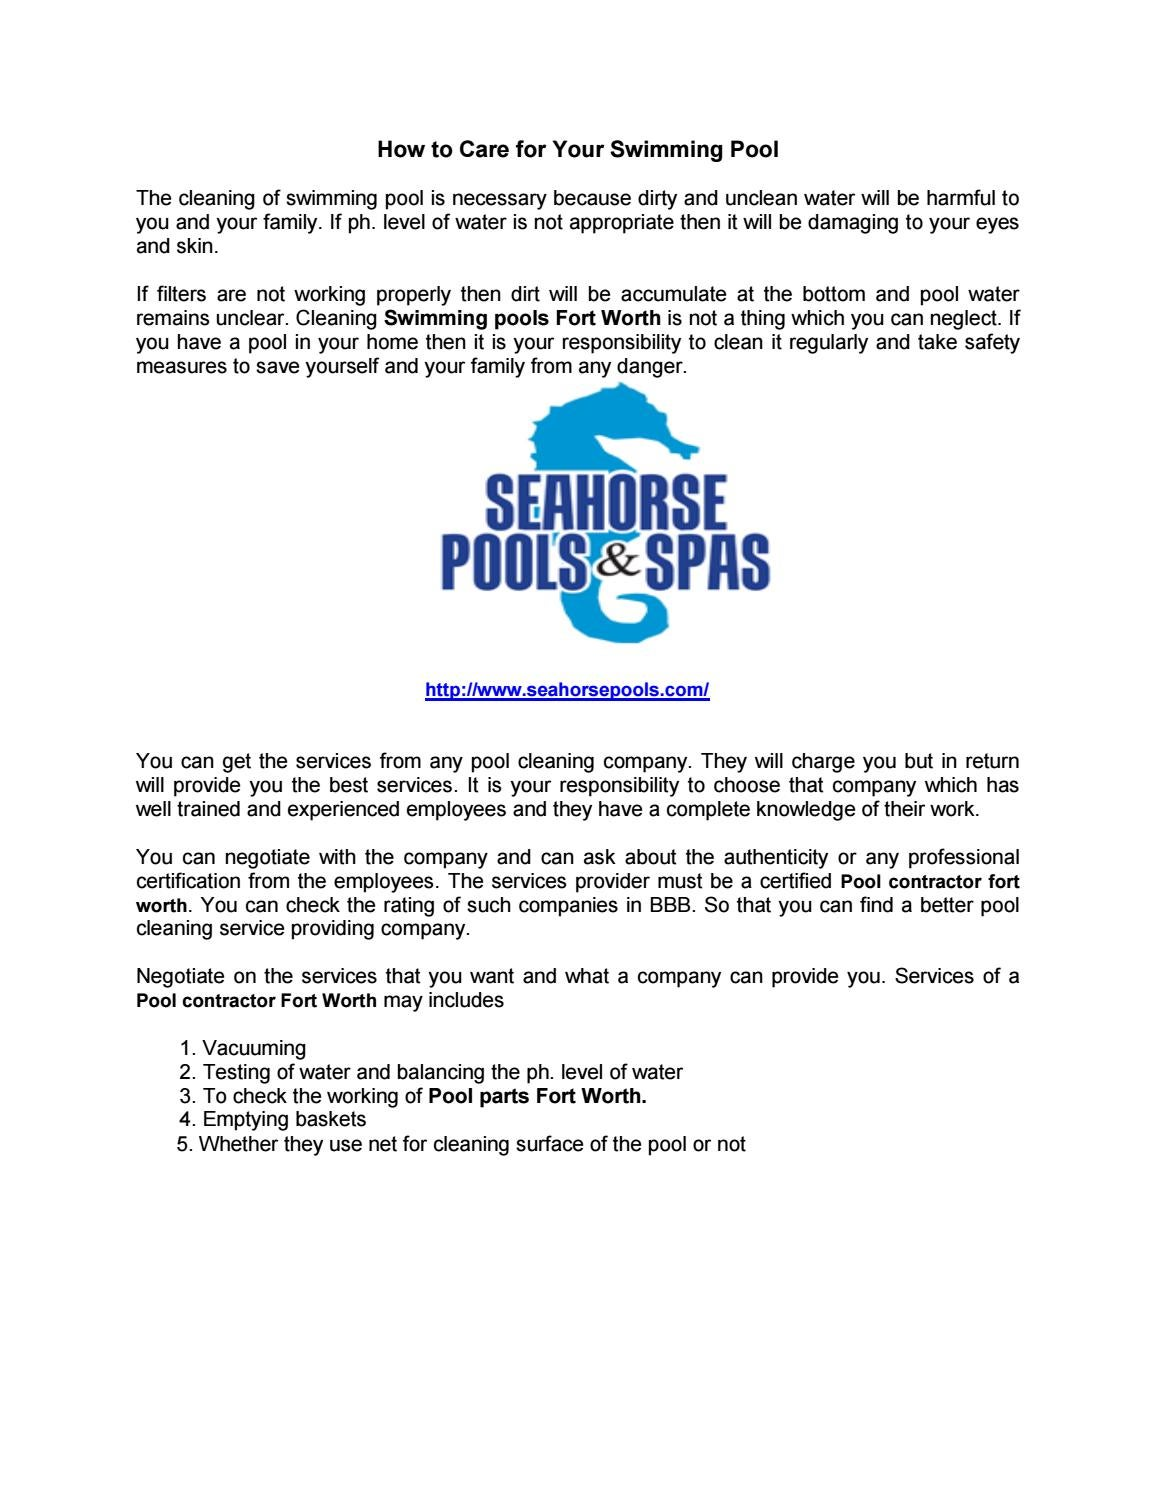 How to care for your swimming pool by David Smith - issuu